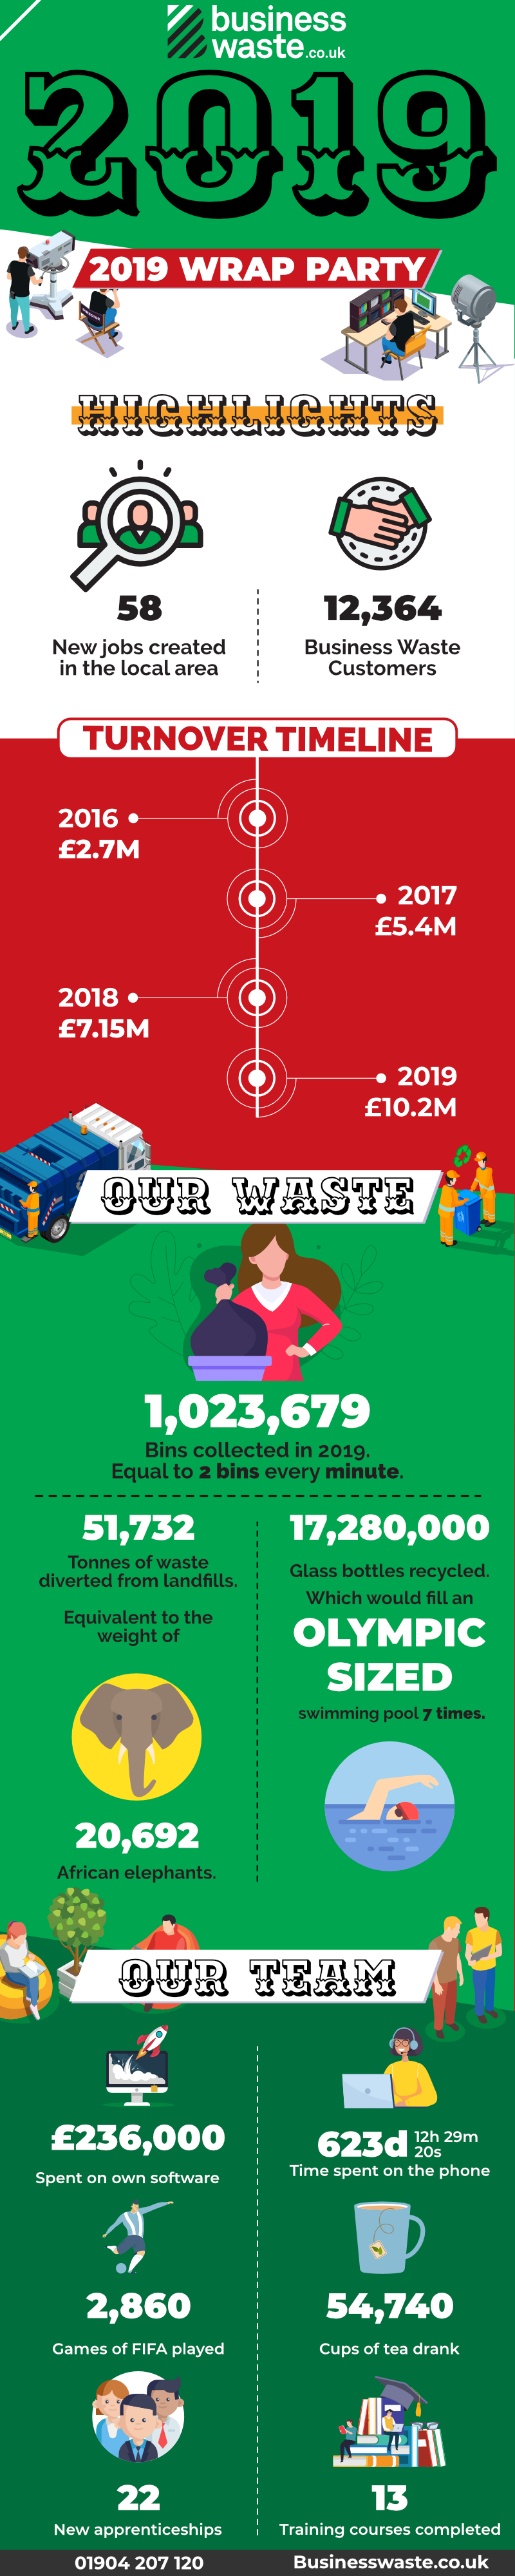 Business Waste LTD Results and Stats 2019